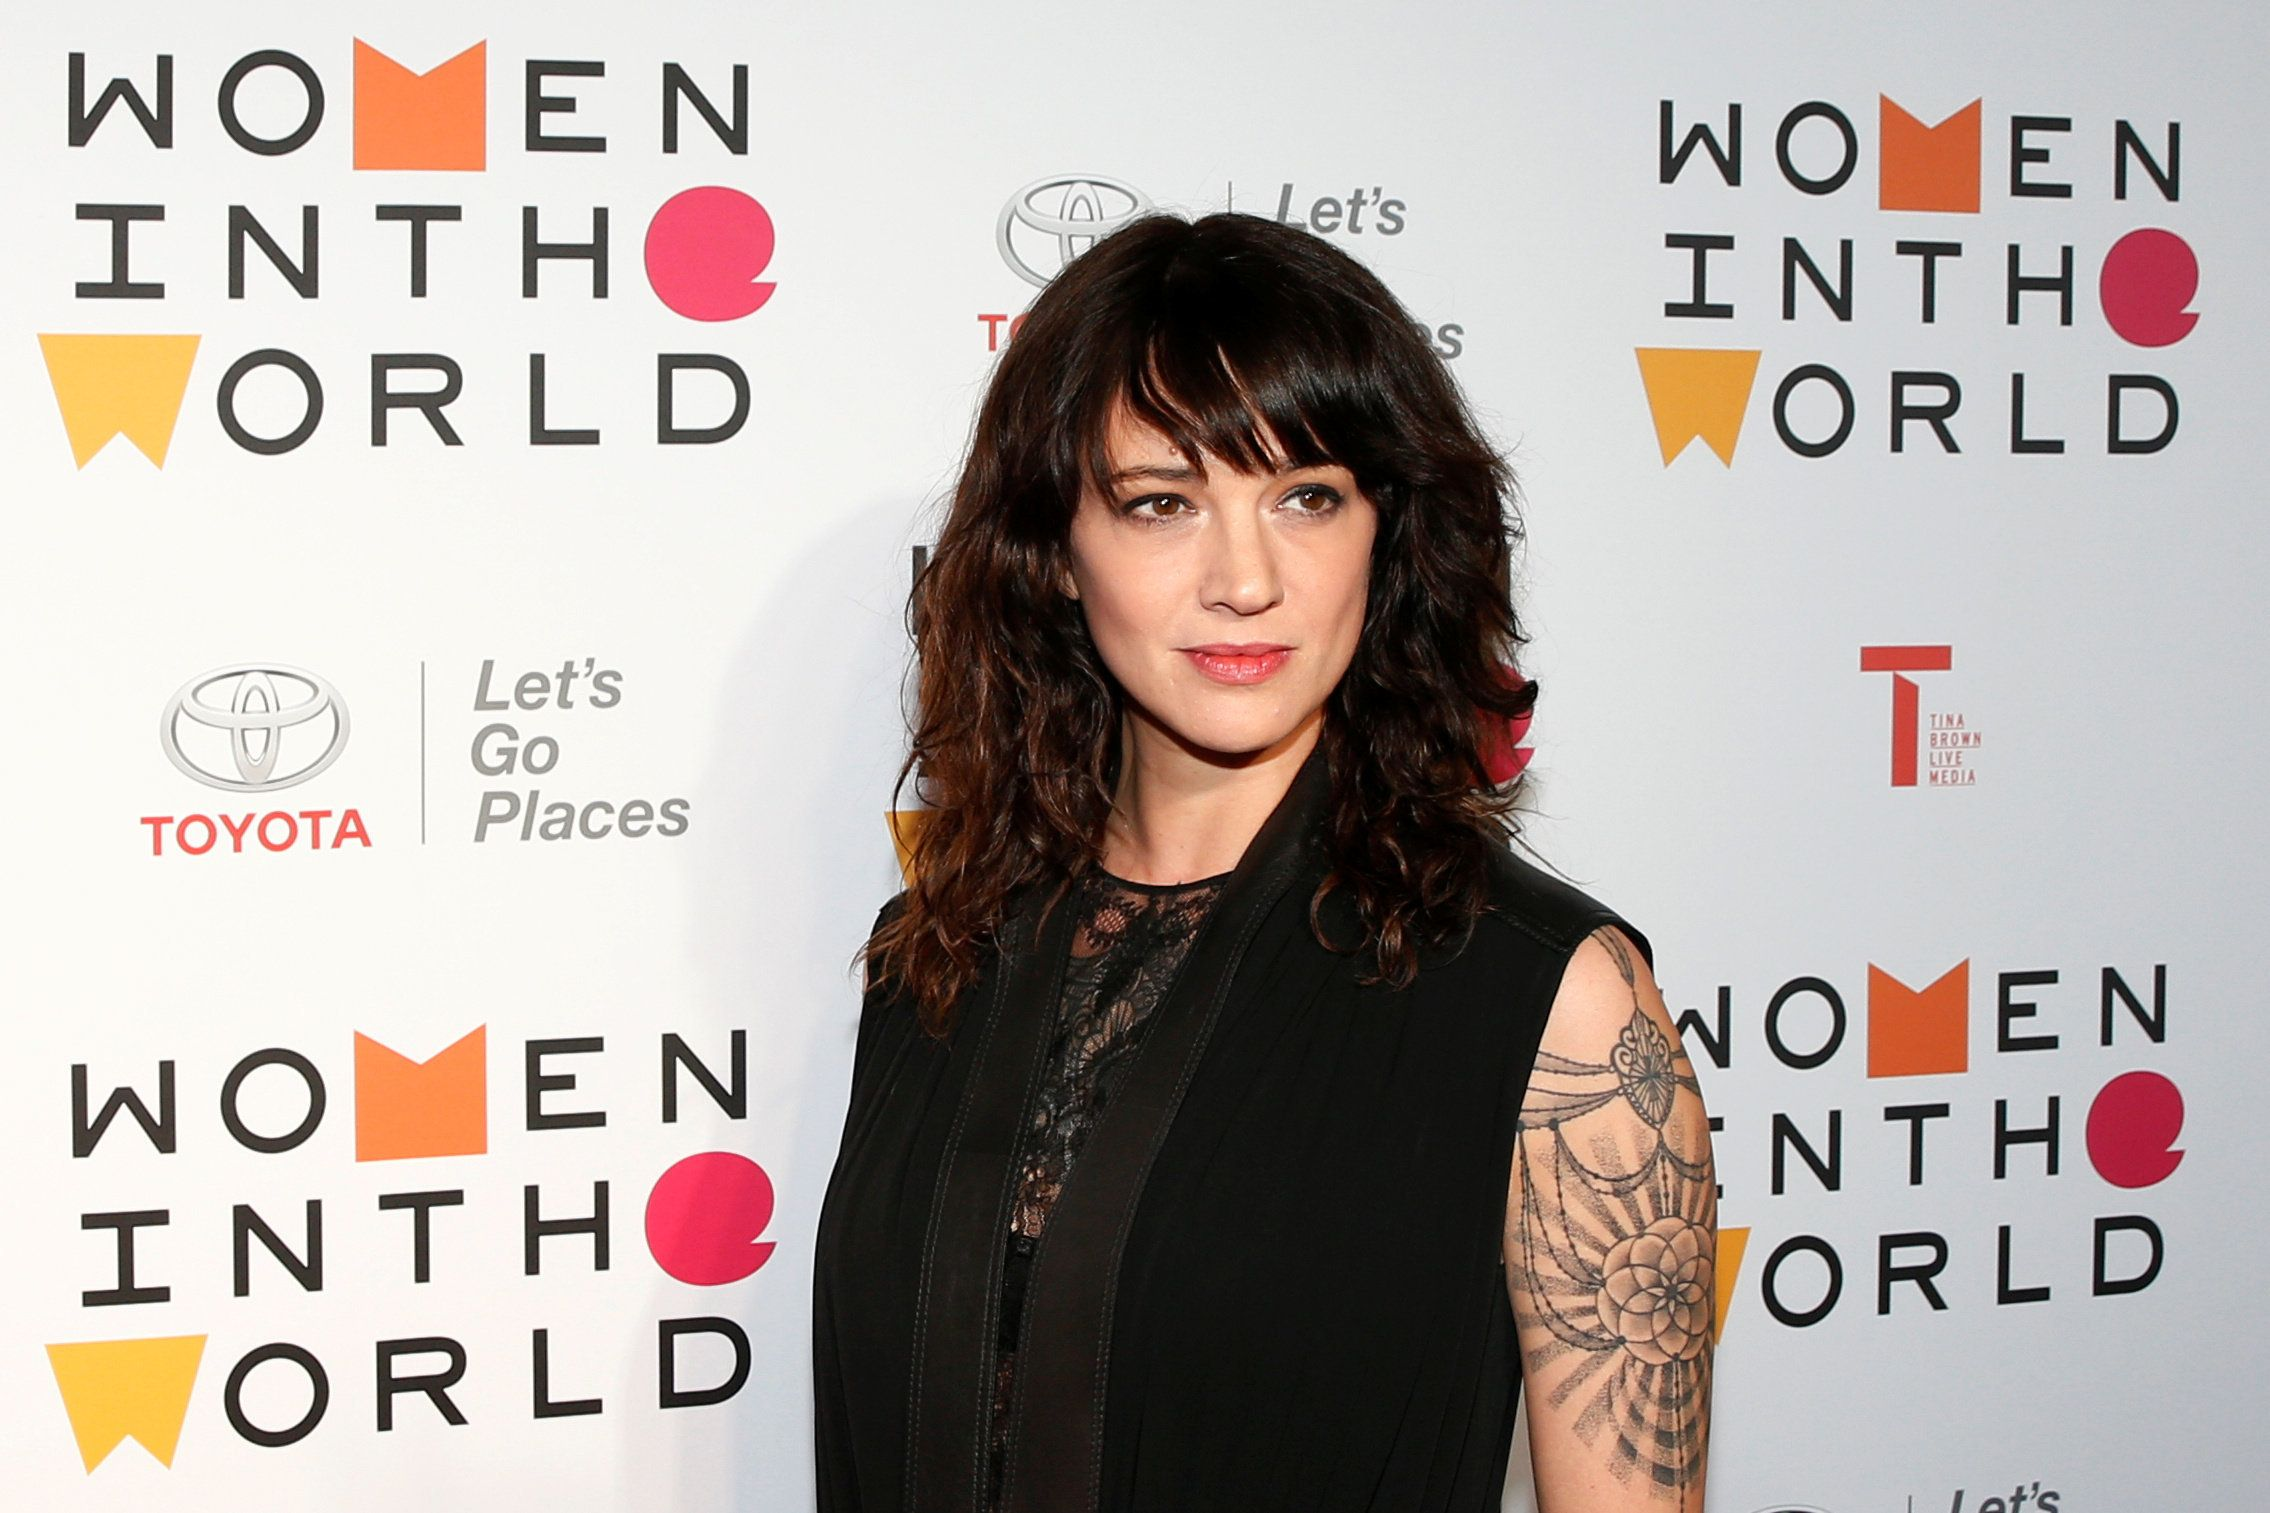 Asia Argento Strongly Denies Sexual Assault After Allegation From Former